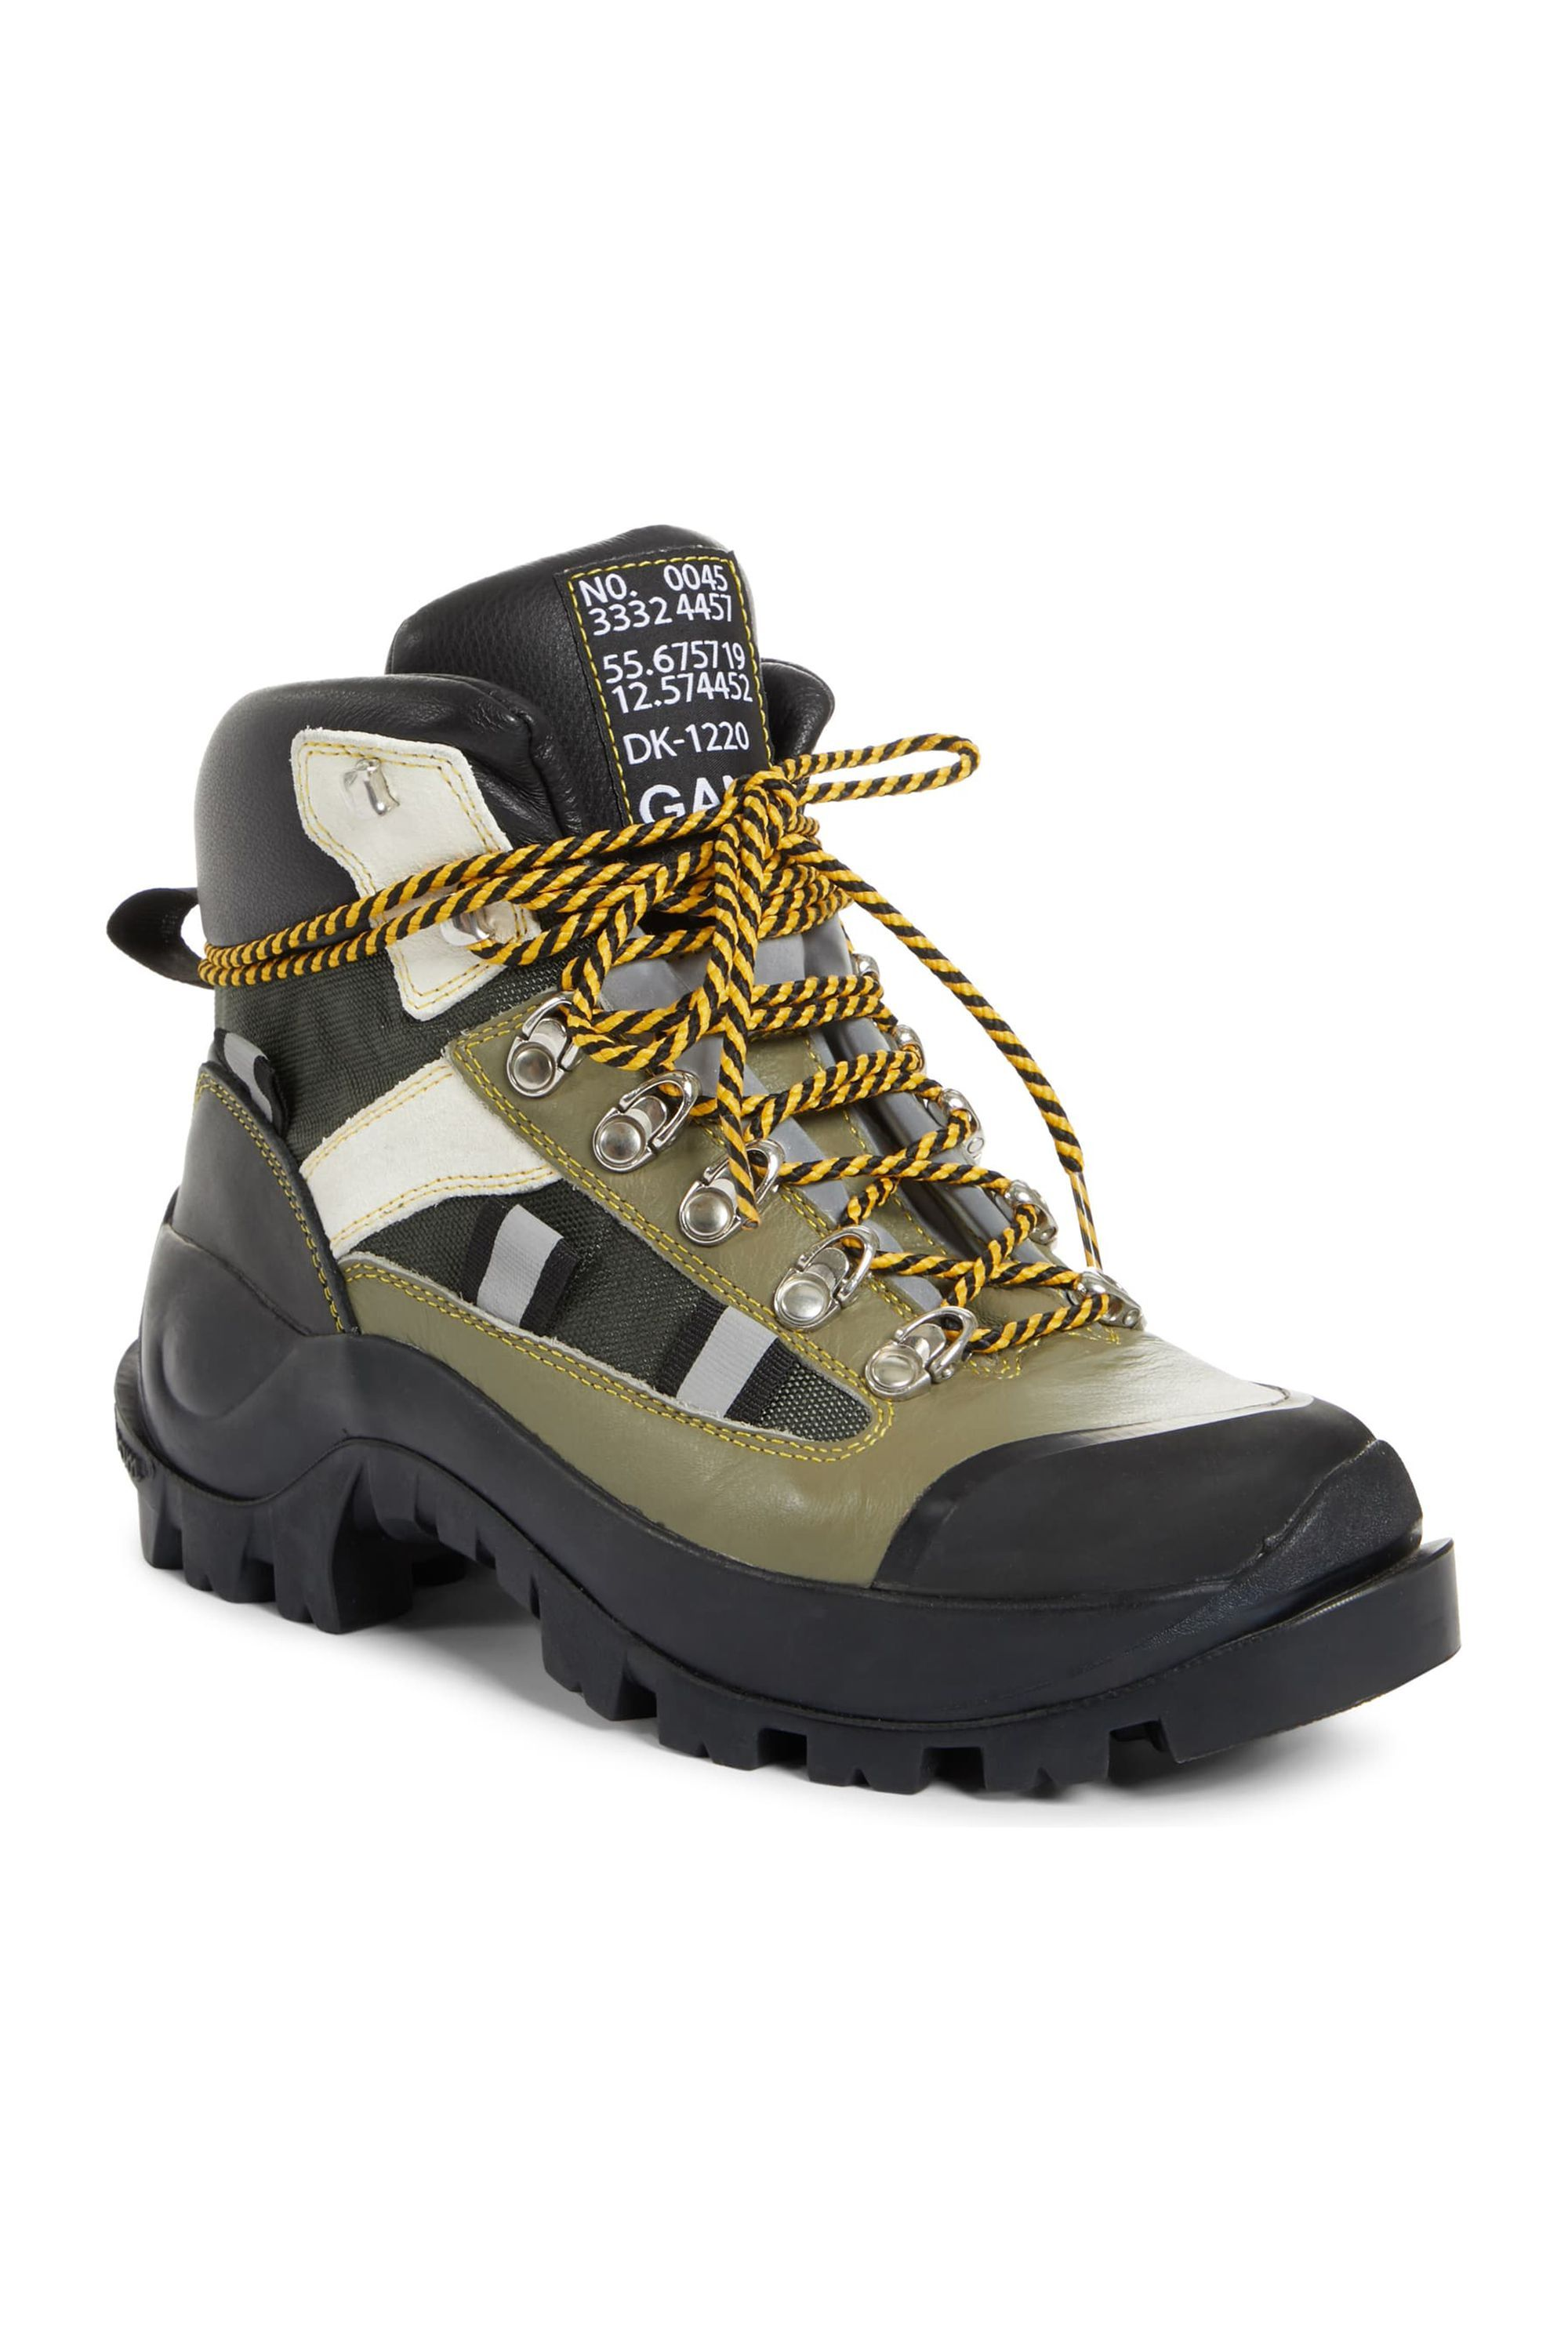 Trekking Hiking Boot Ganni, $332.49 nordstrom.com SHOP NOW